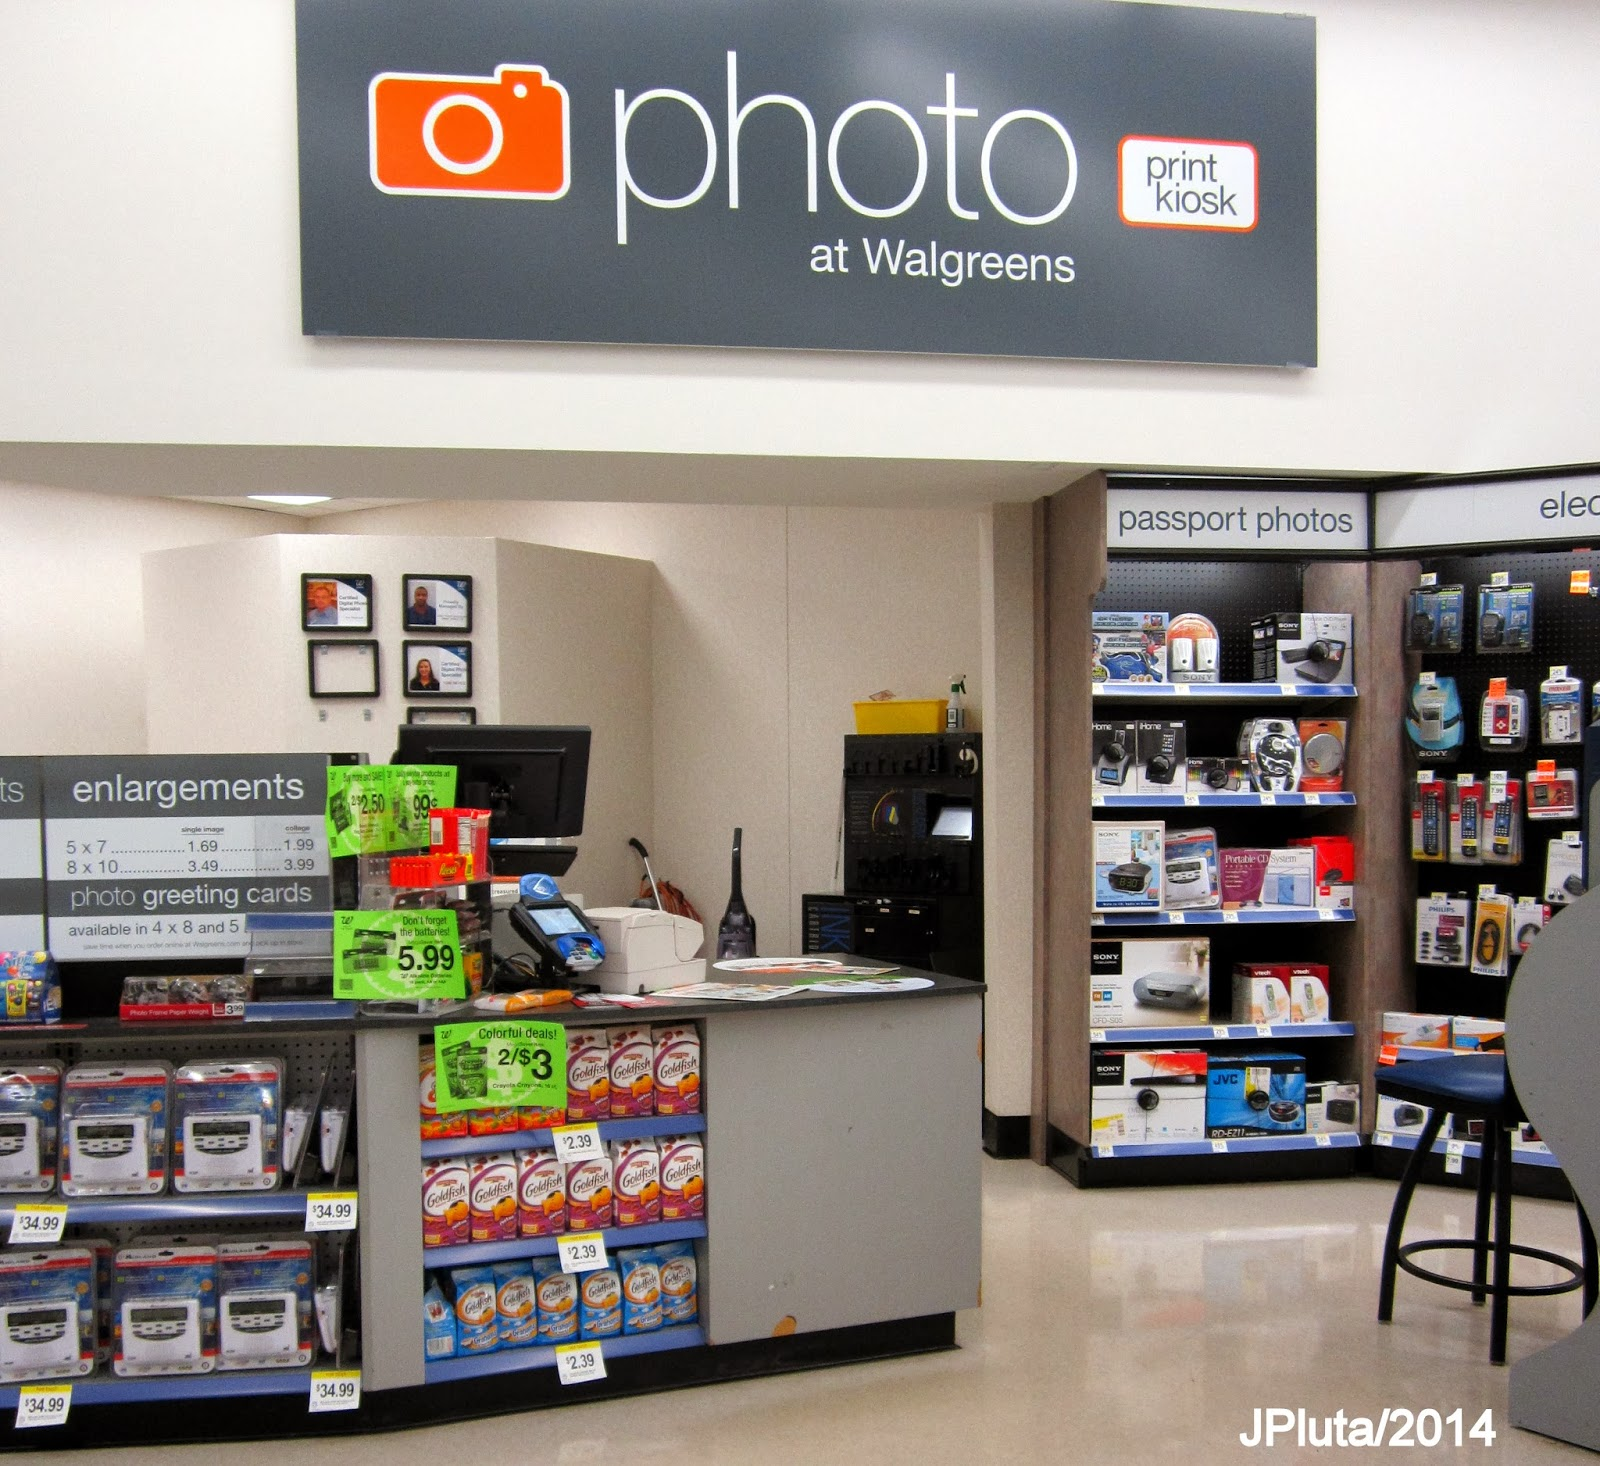 Problems with walgreens photo website Photo Help - General Technical Issues-Troubleshooting